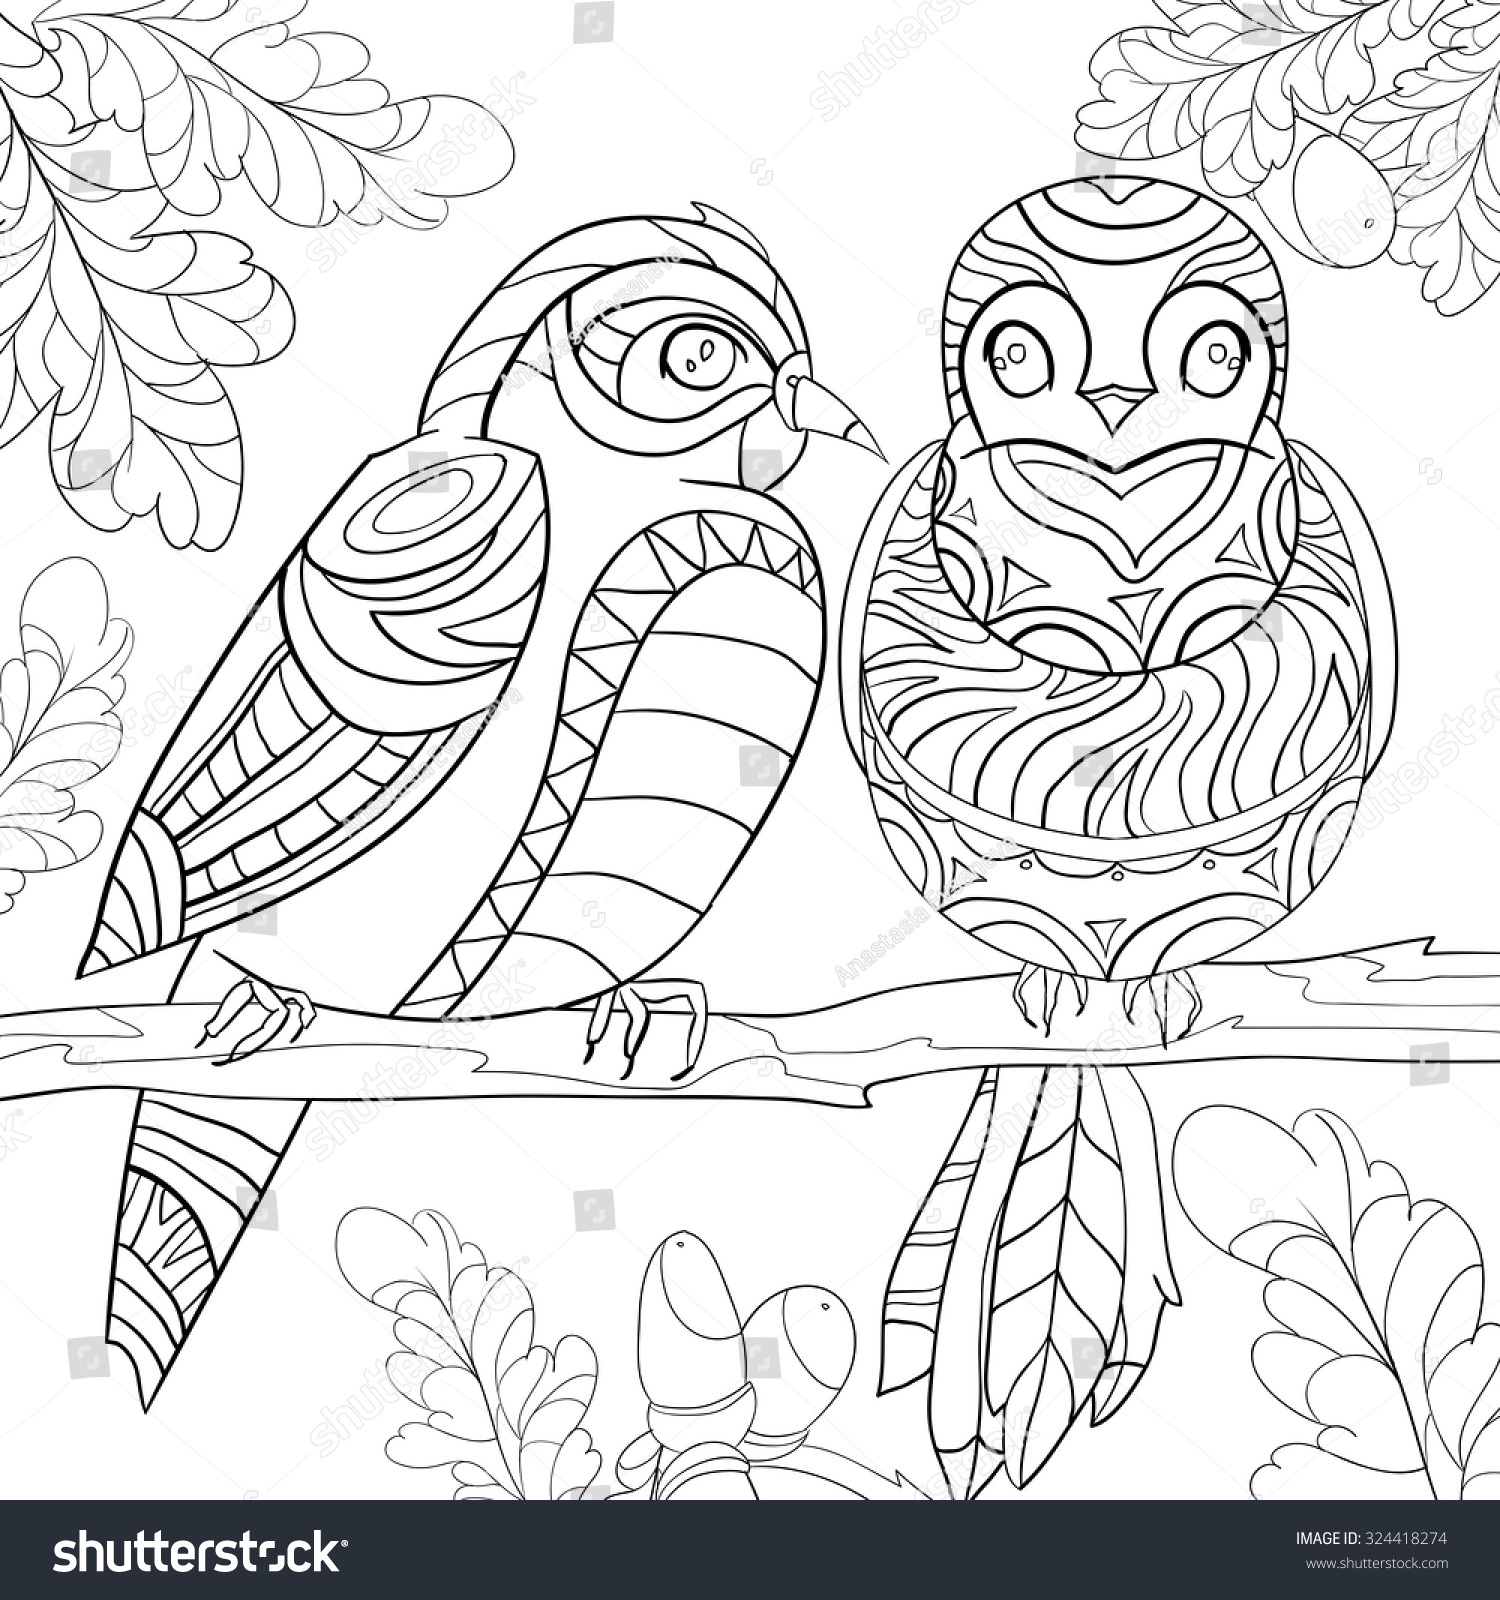 Therapy Coloring Book Pages Coloring Pages